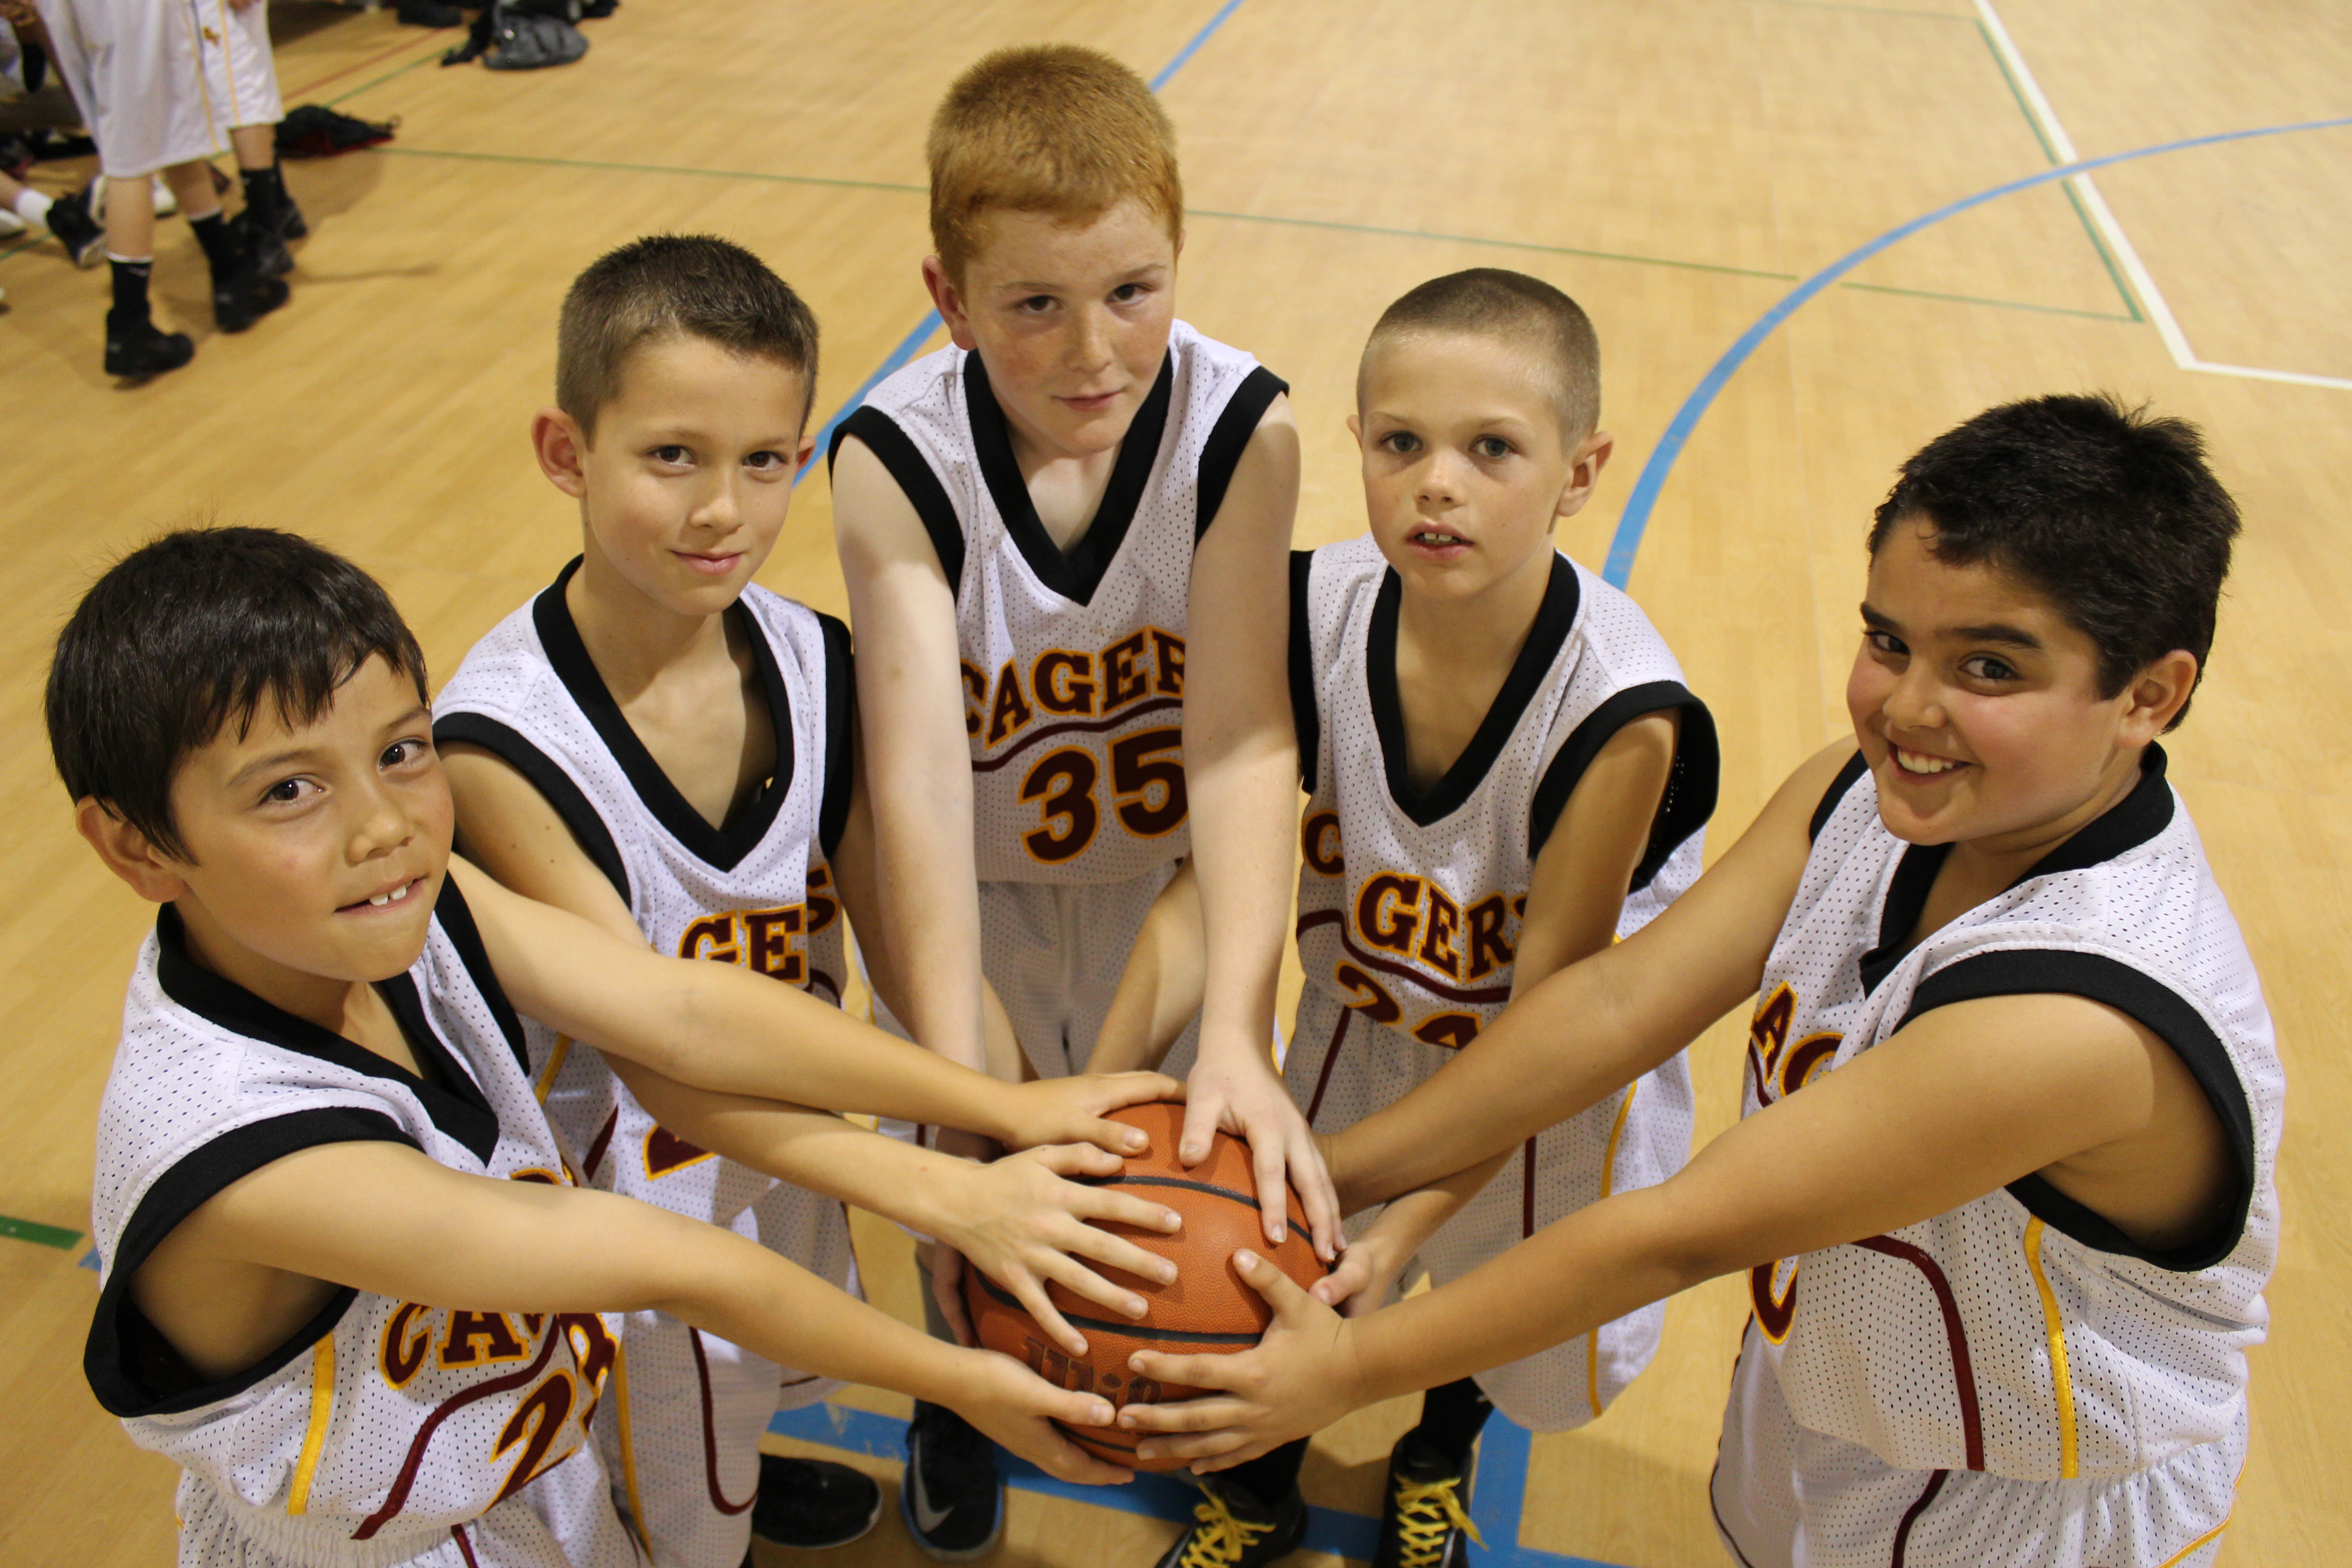 Simi Valley Cagers